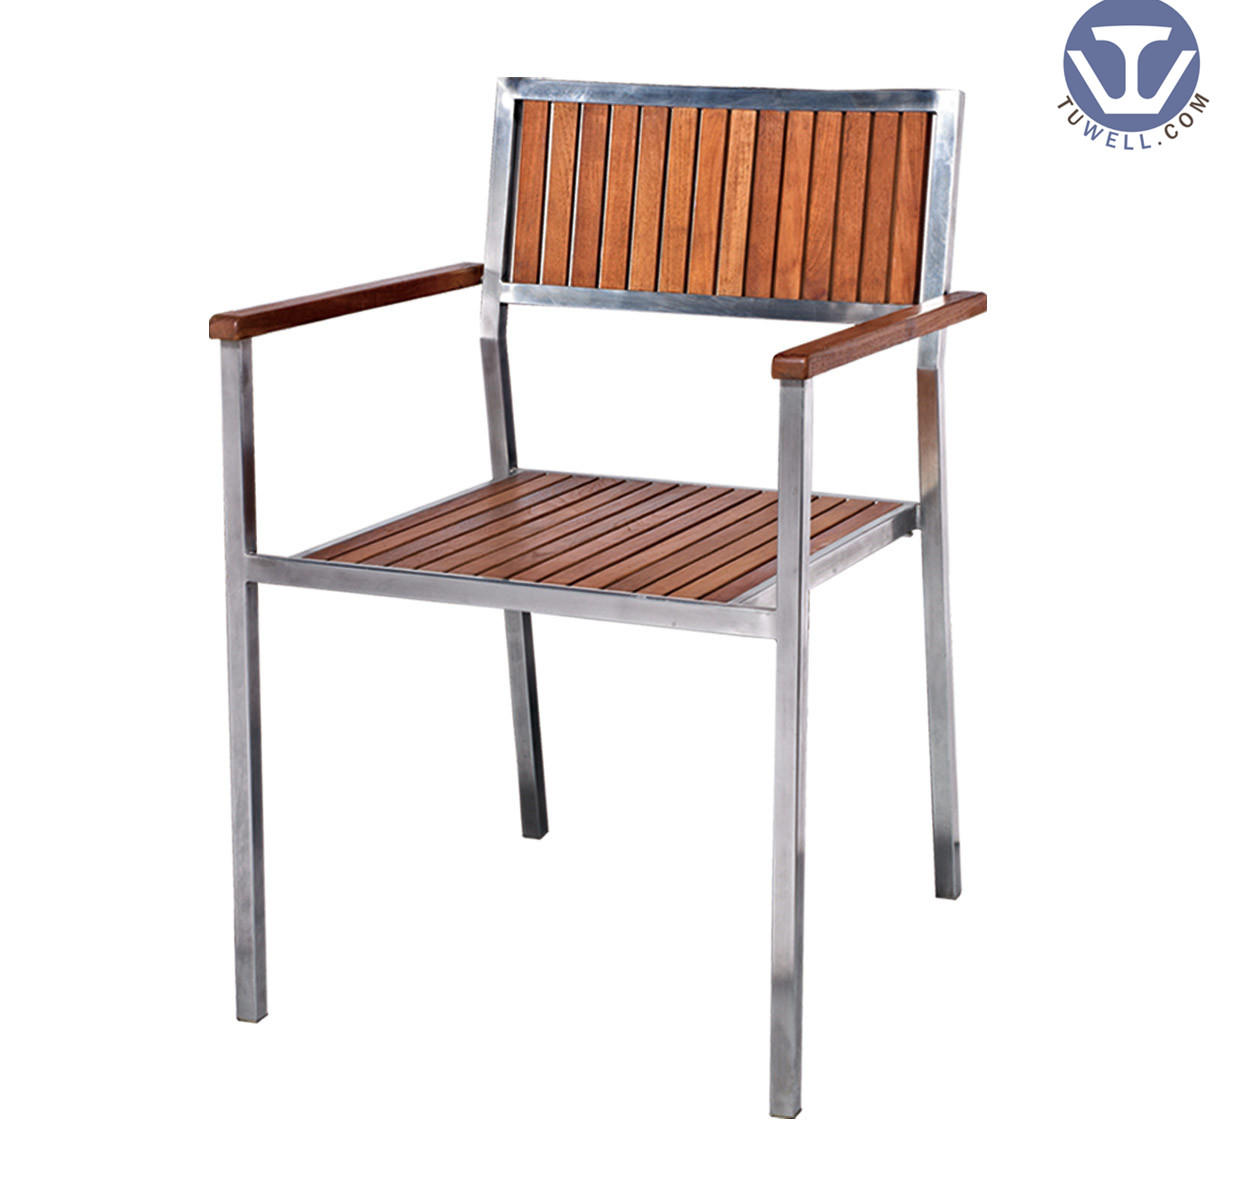 TW4016 Aluminum wooden chair Leisure chair